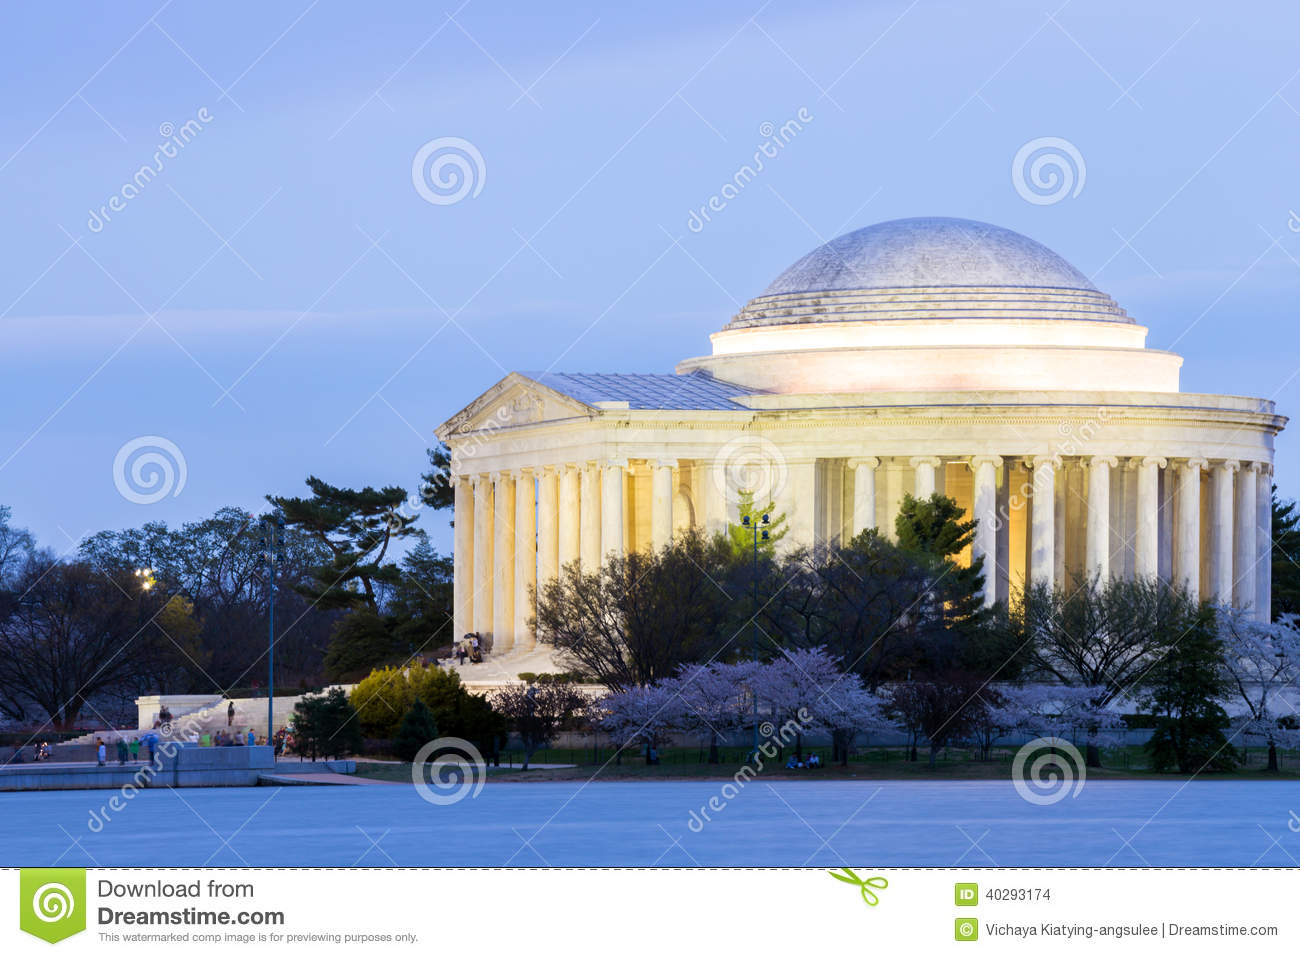 Thomas Jefferson Memorial Building Stock Photo - Image of ...